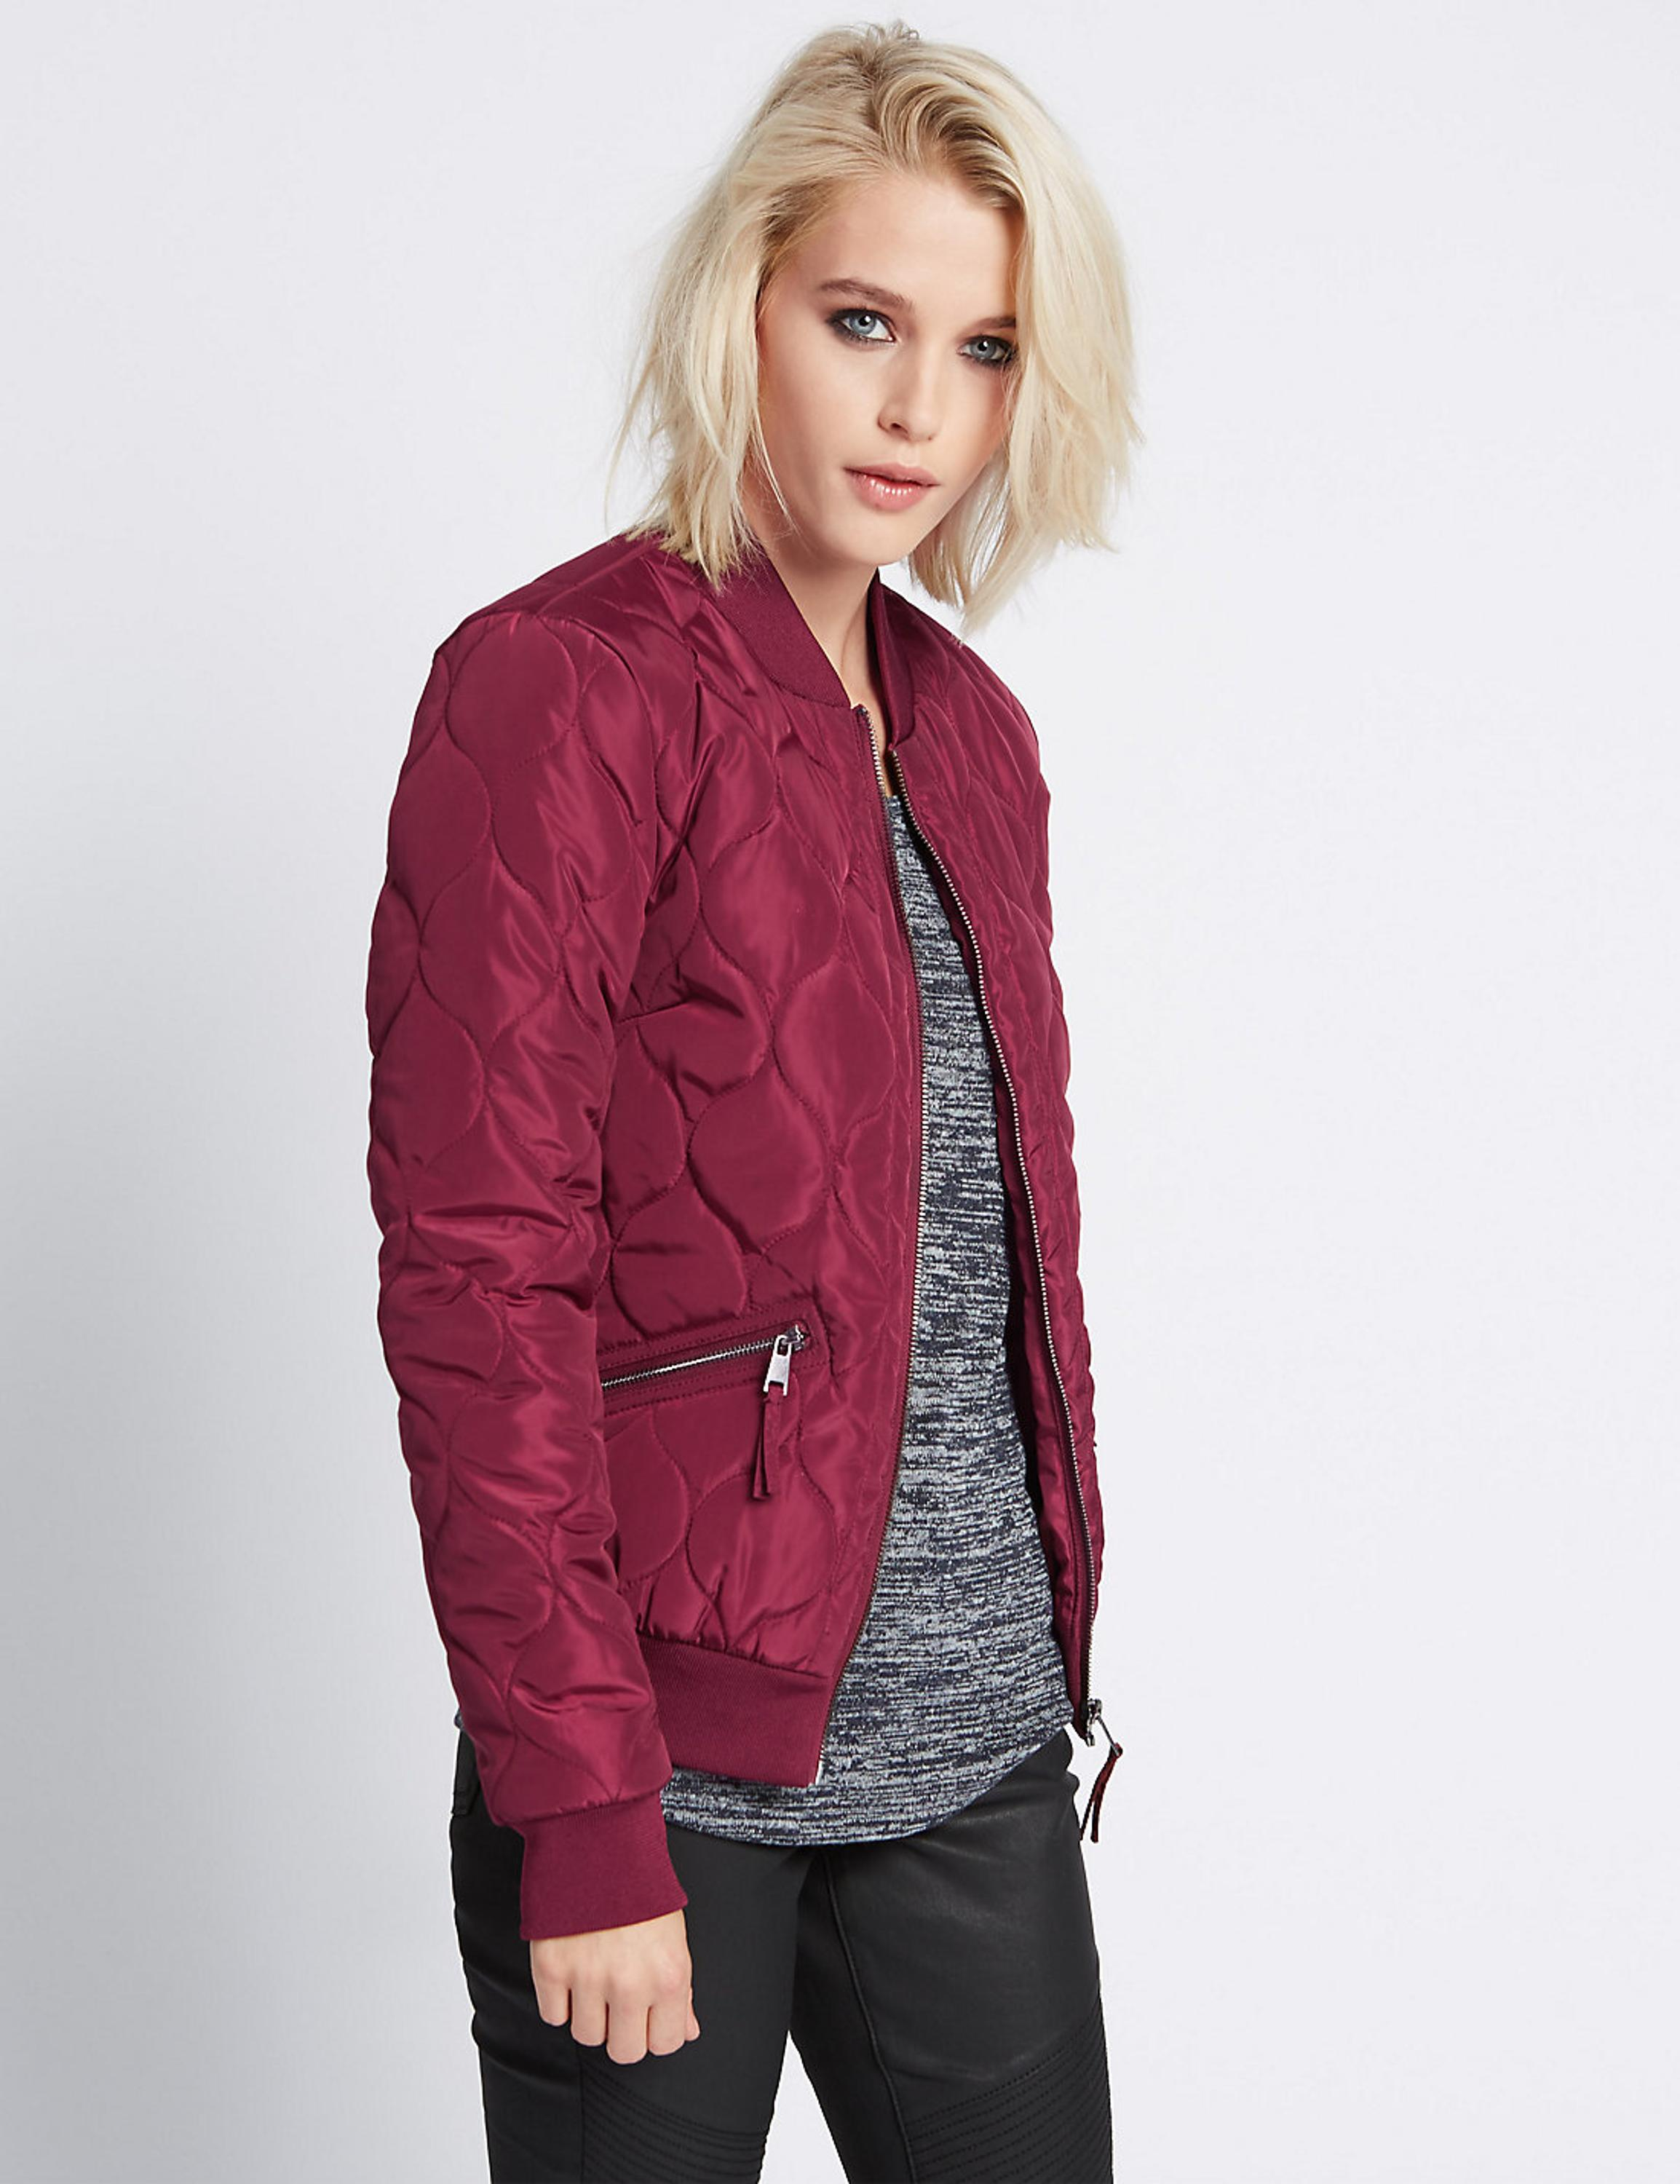 Fashion Cotton Padded Bomber Jackets Autumn&Winter women Basic Pilot Jacket Coats Stand neck Outwear China Factory